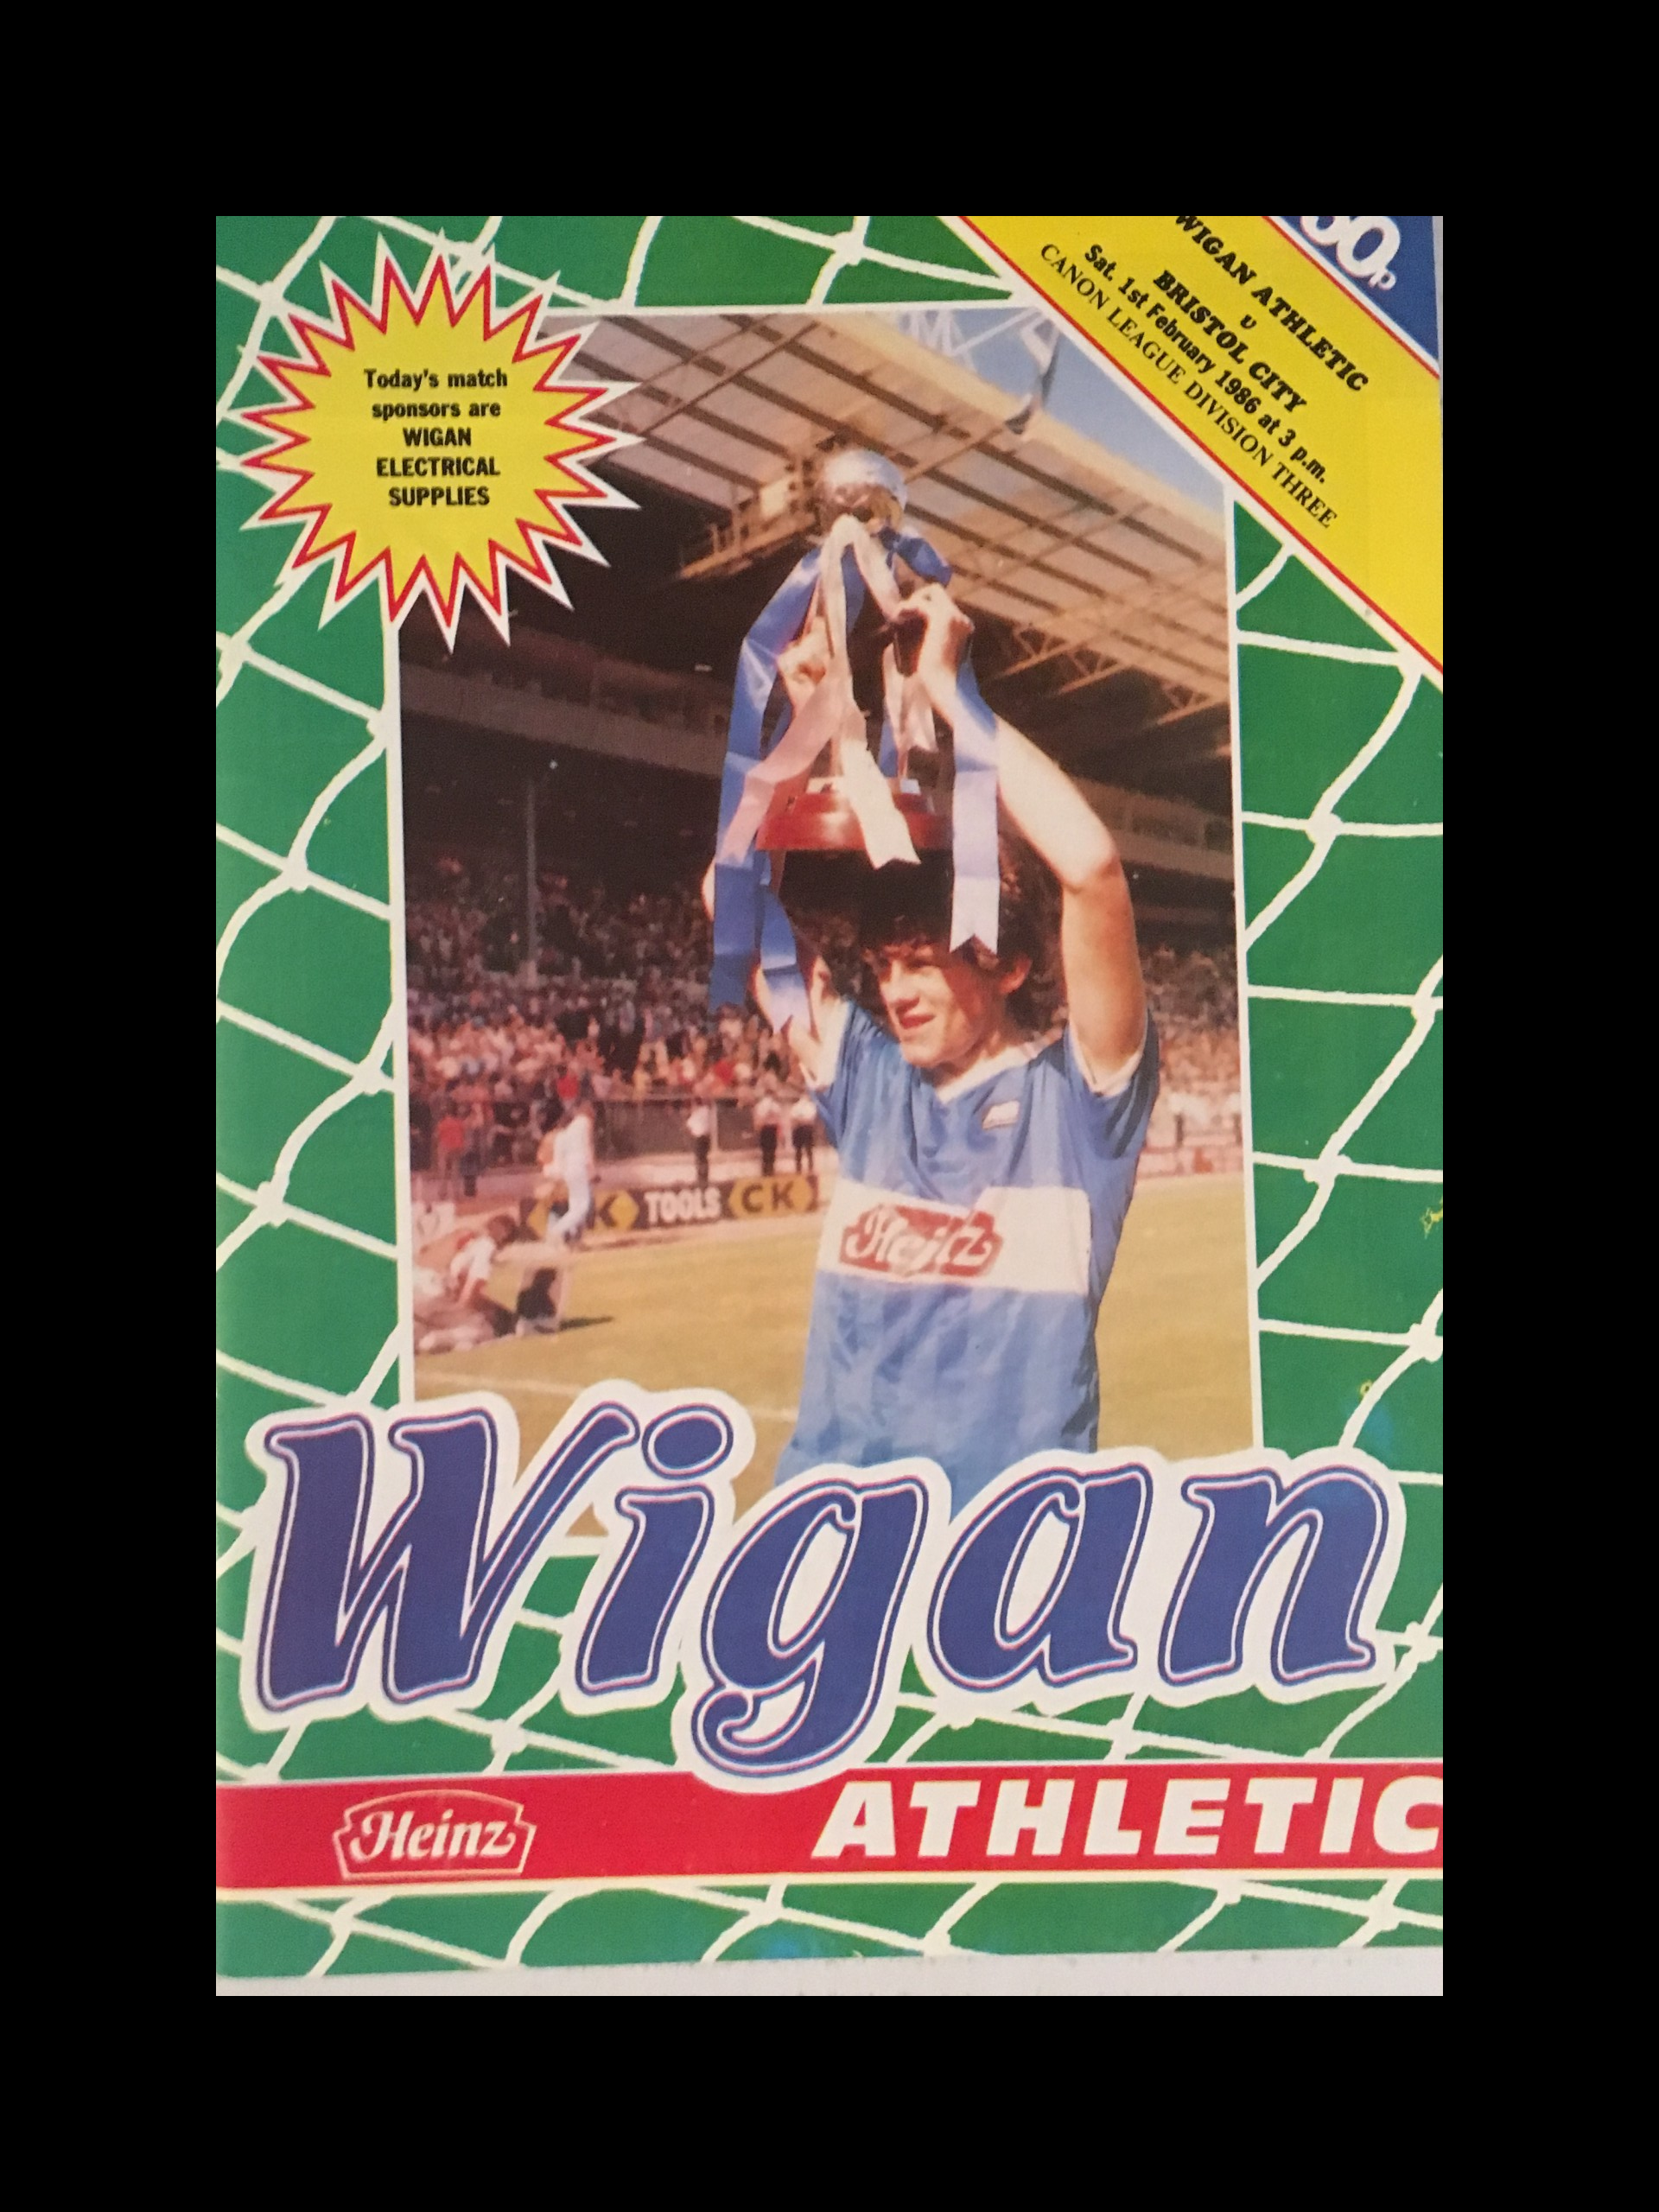 Wigan Athletic v Bristol City 01-02-86 Programme